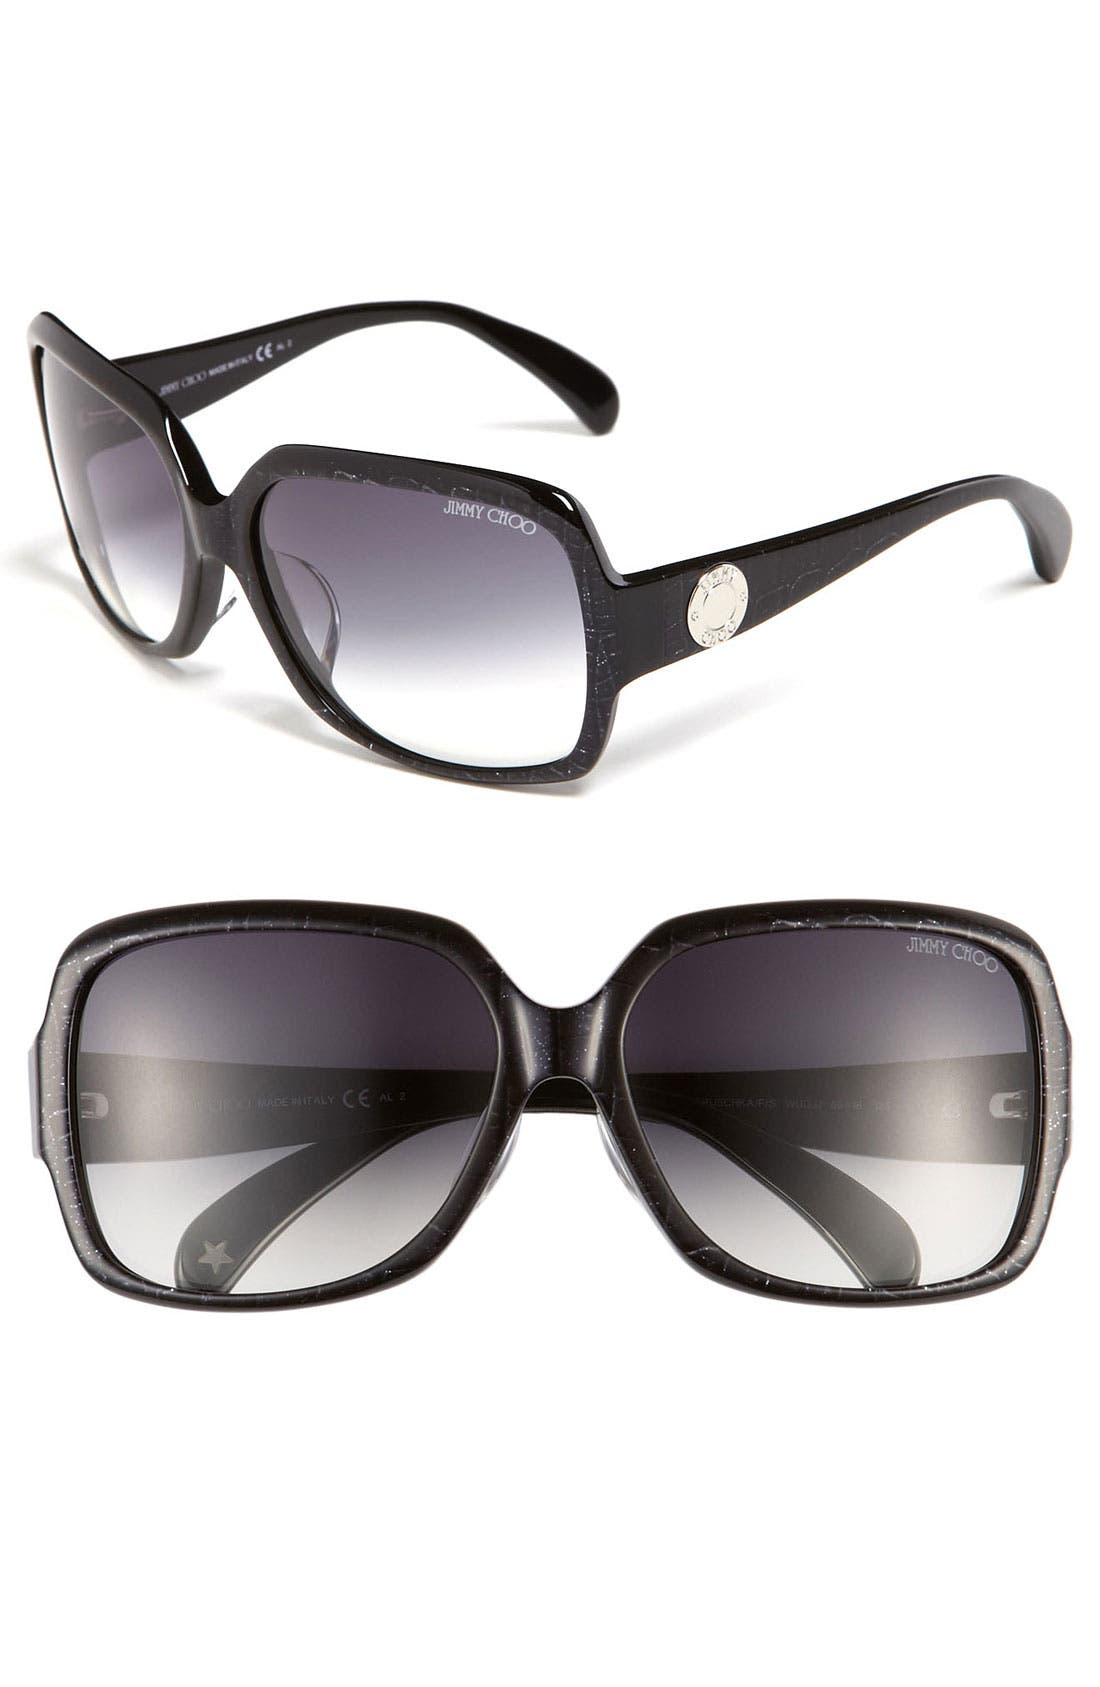 Main Image - Jimmy Choo 'Veruschka - Special Fit' Sunglasses